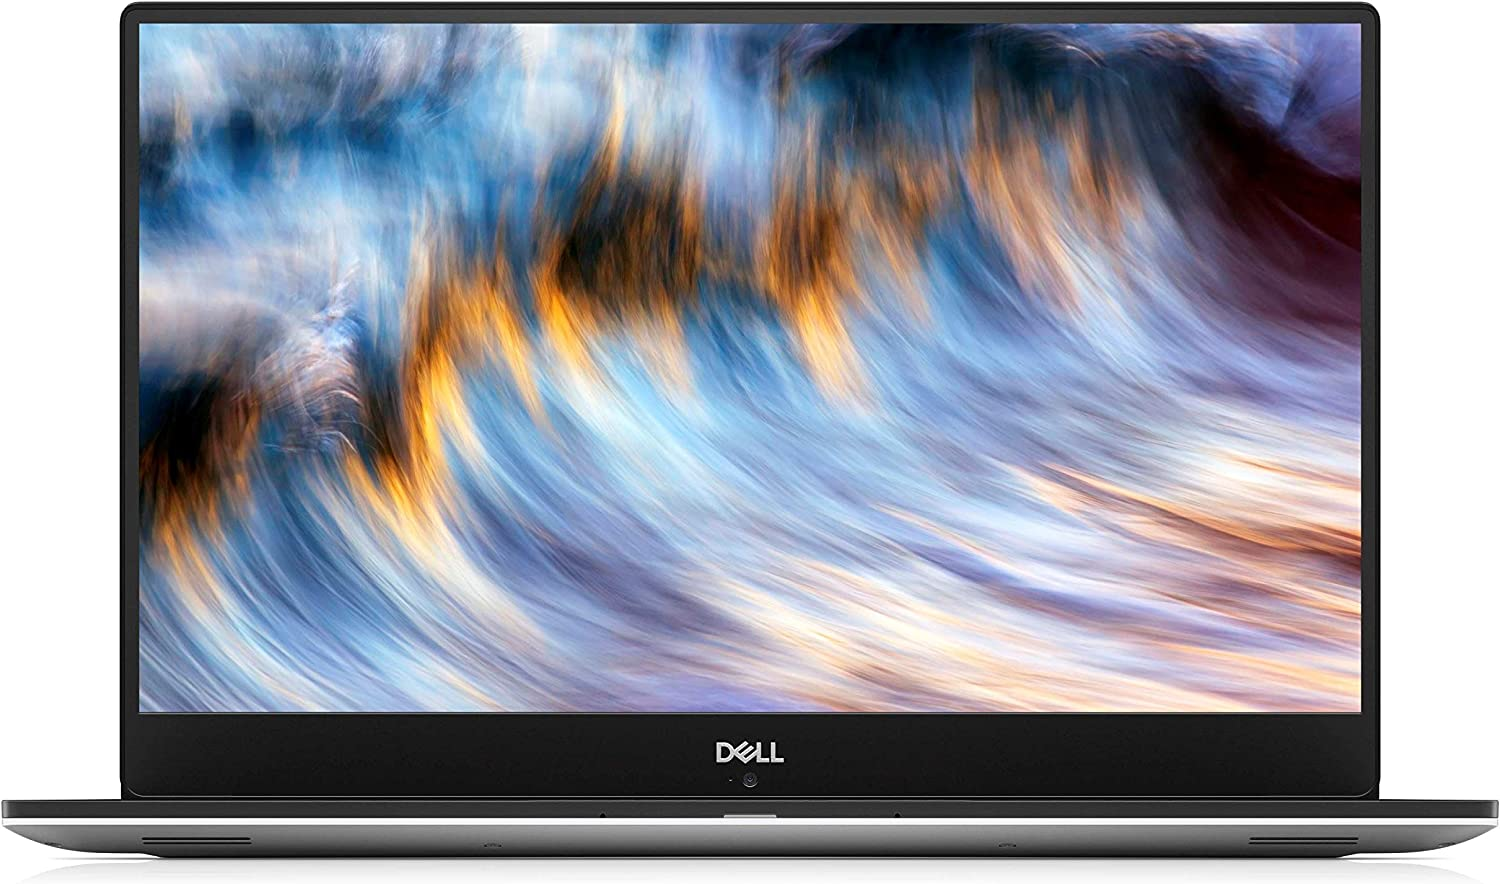 "Dell XPS 9570 15.6"" FHD i7-8750H 16GB RAM 512GB SSD GeForce GTX 1050Ti Silver Windows 10 Home"